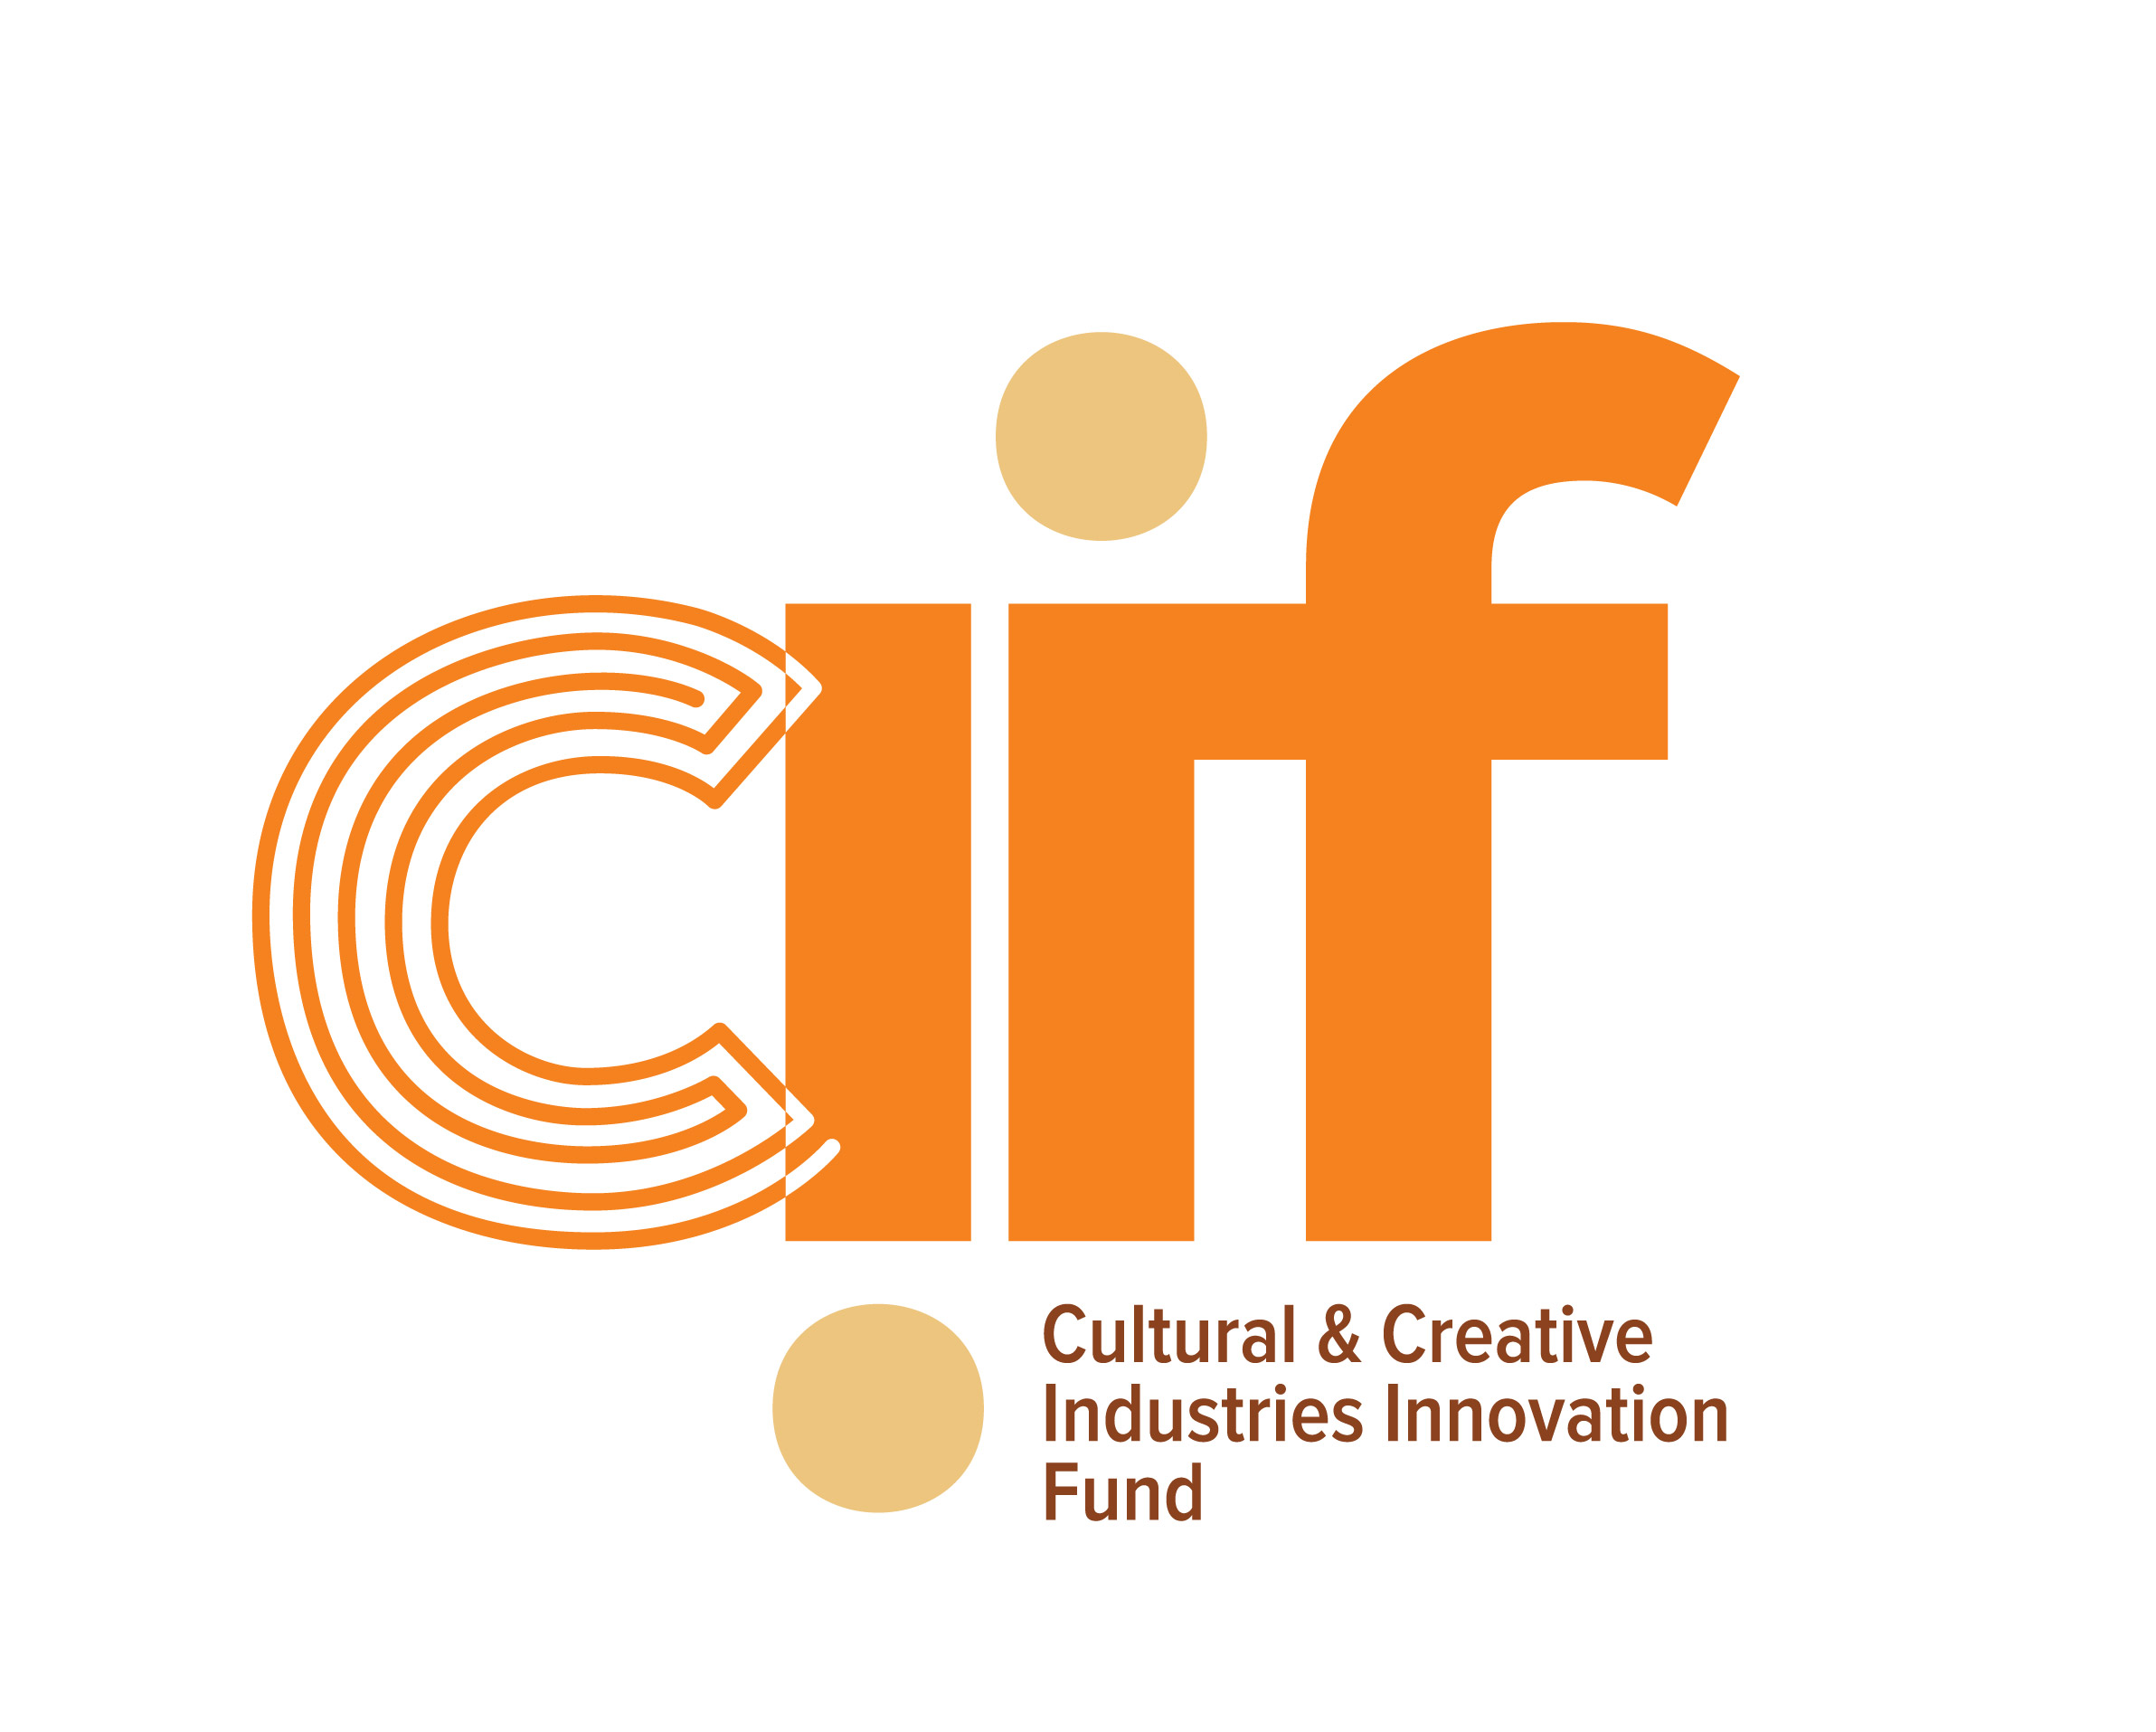 logo for the Cultural and Creative Industries Innovation Fund - lettering of acronym in orange with lines in letter C